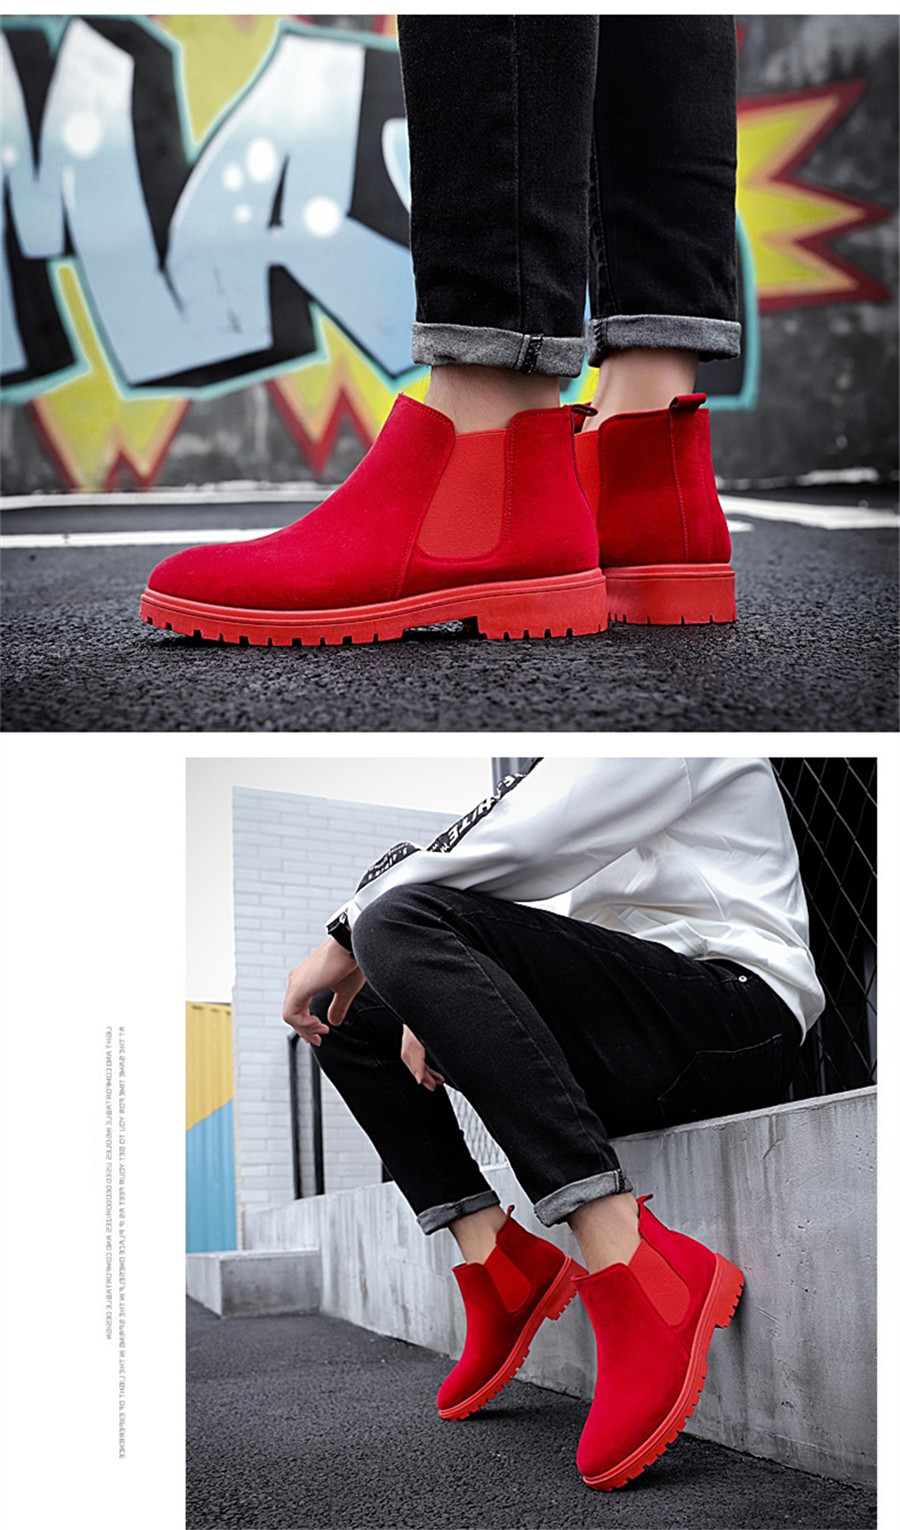 PINSV Chelsea Boots Men Shoes Ankle Boots Men Cow Suede Leather Boots For Men Trendy Autumn Shoes Bota Masculina 10